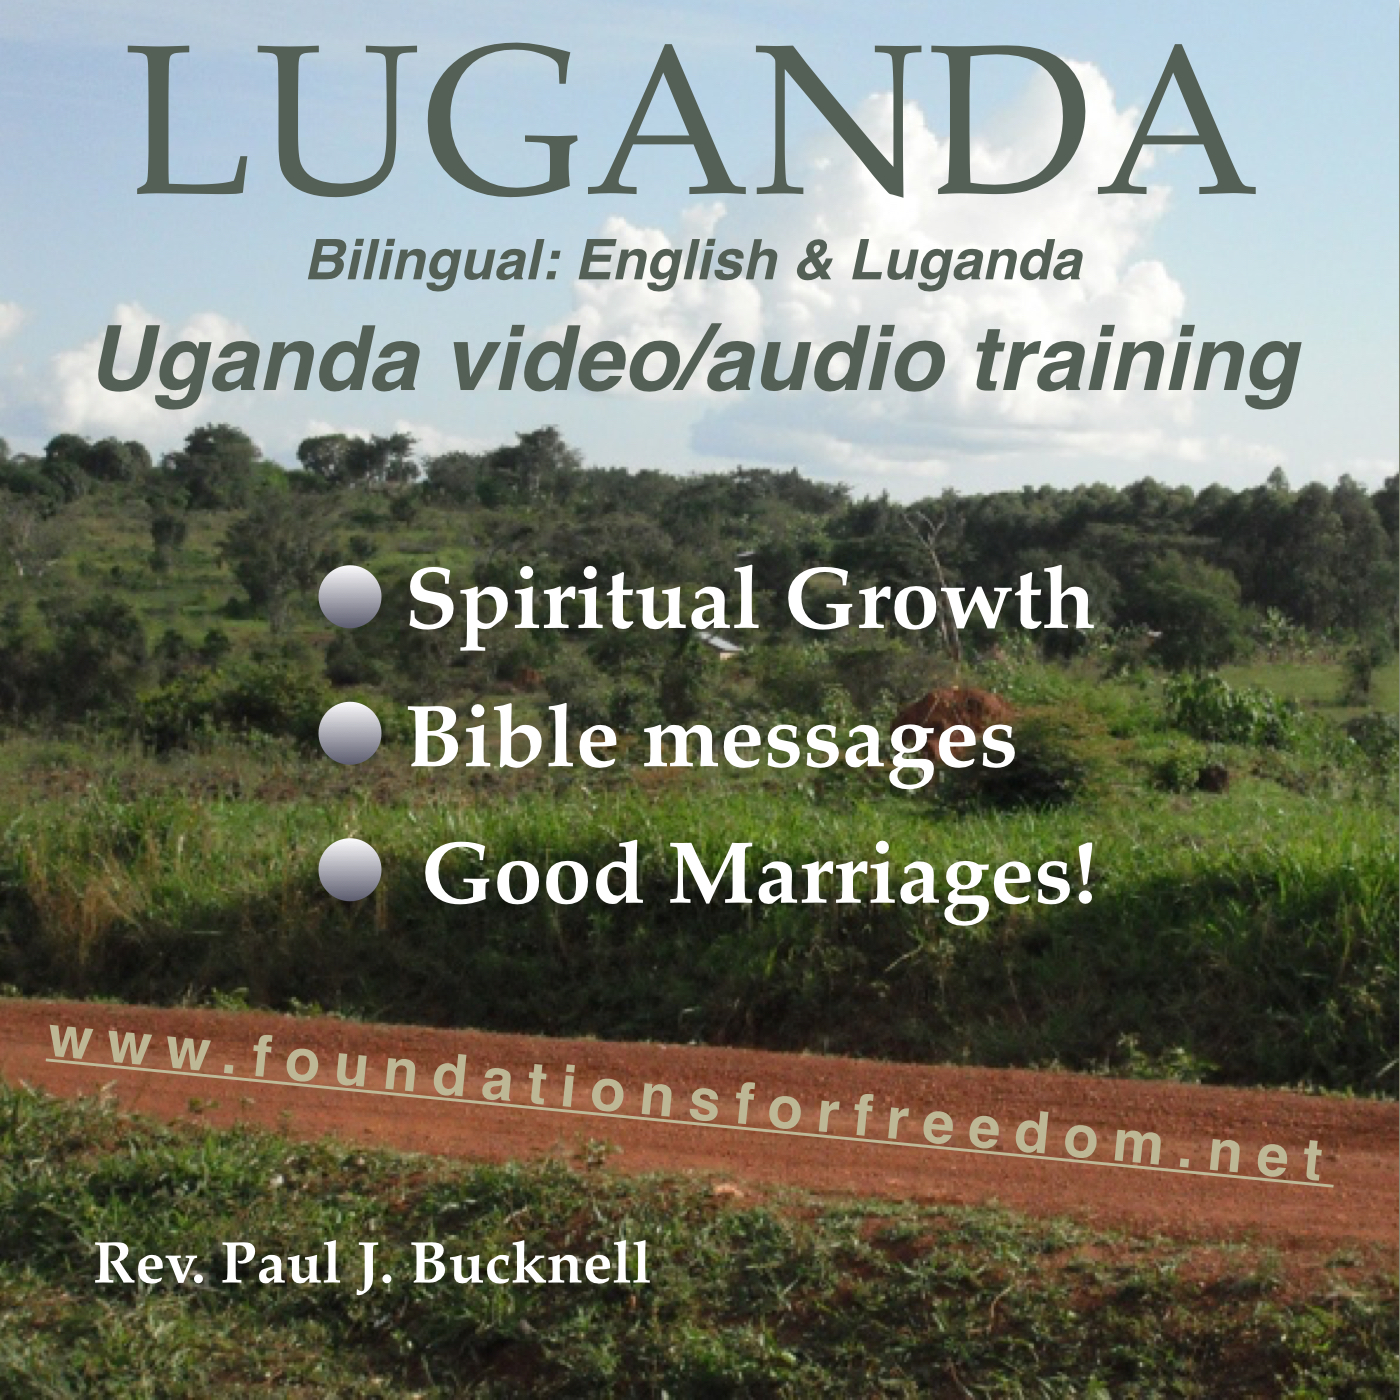 Luganda Discipleship and Marriage Training Materials for Uganda: Audios, Videos and Articles